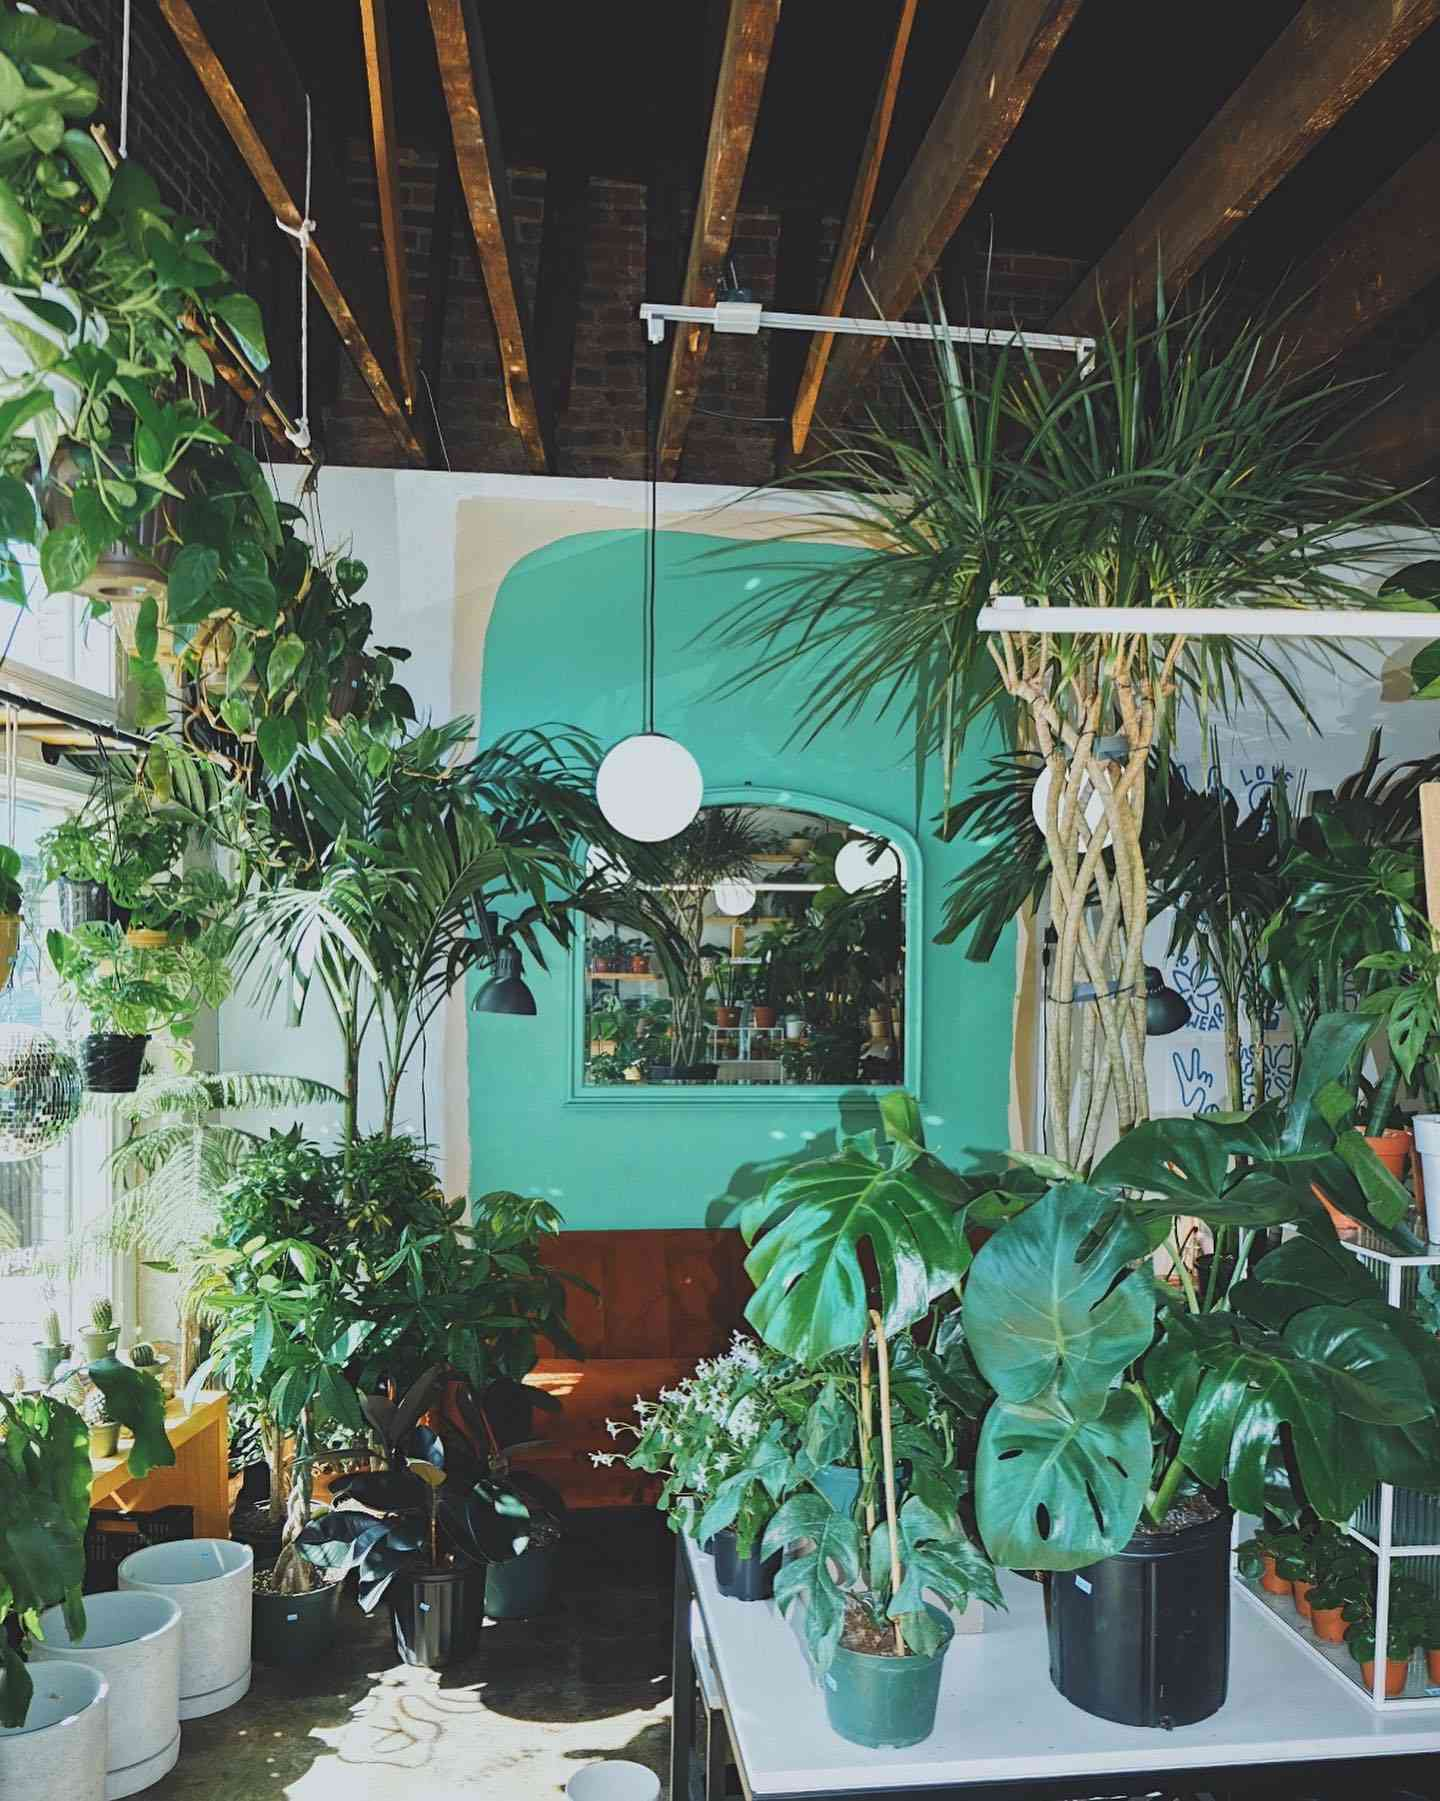 Room filled with various potted plants